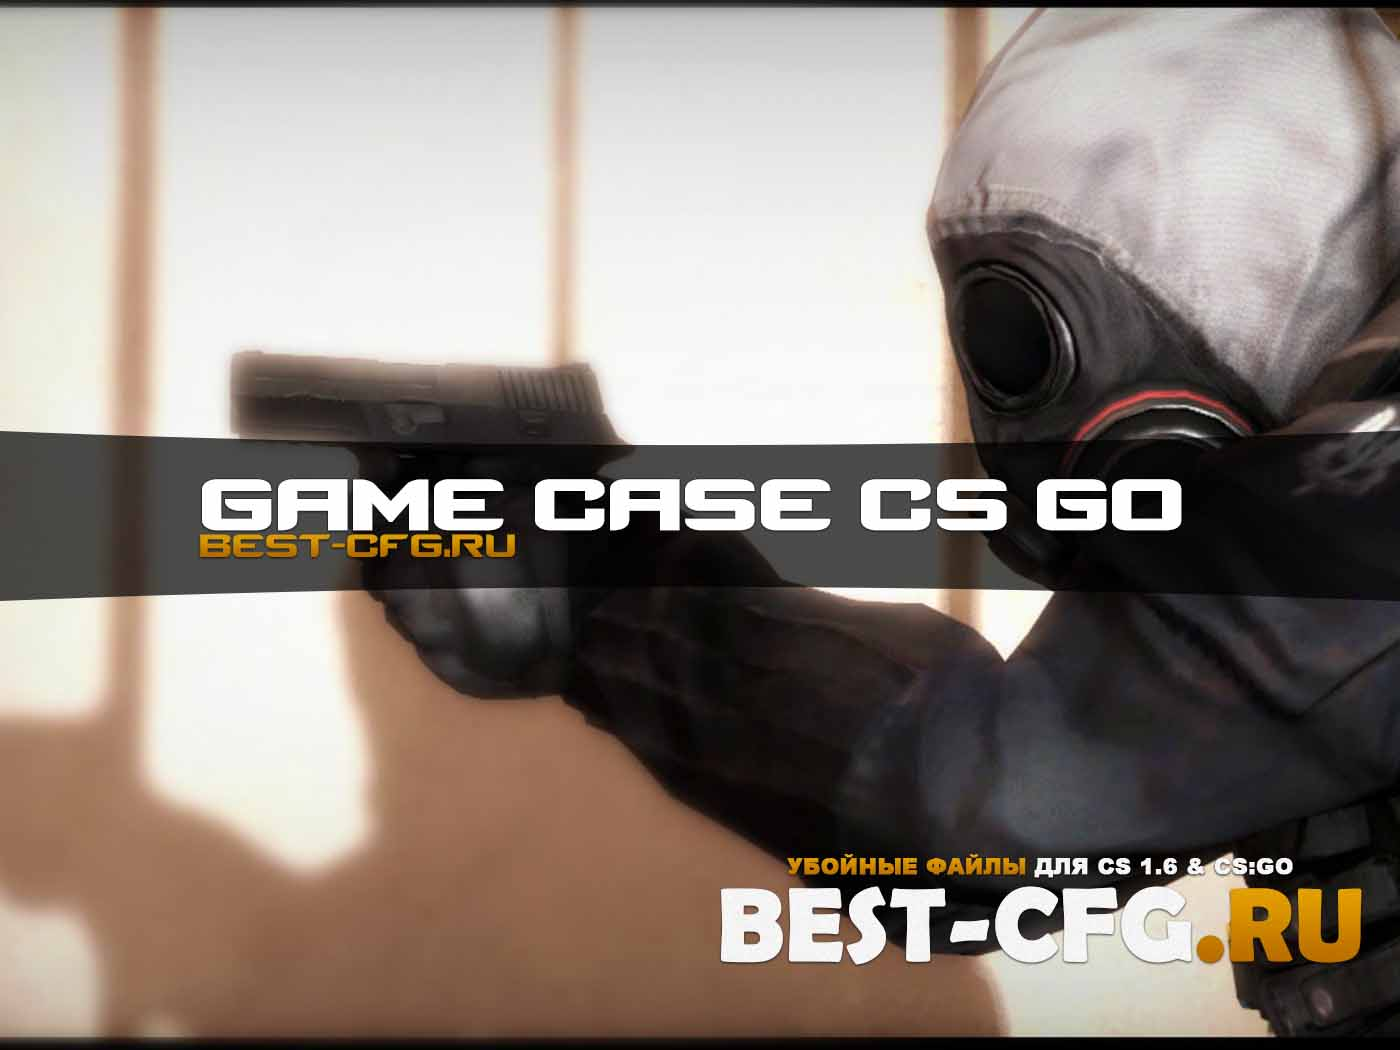 Новый кейс кс го 16.06.16 | game case cs go